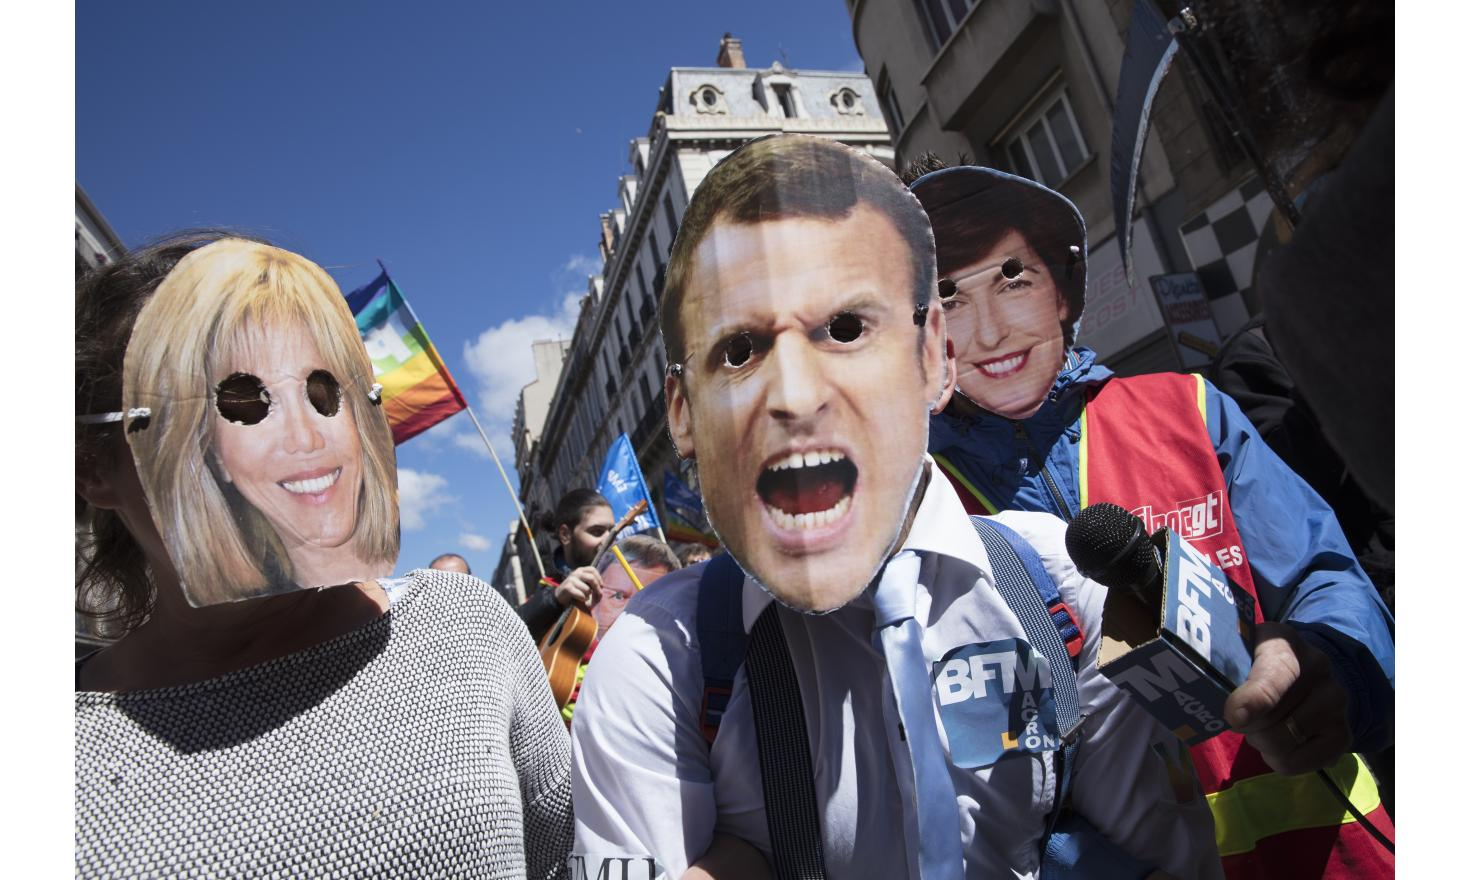 Several thousands of people march against the far-right Front National and Emmanuel Macron, in Marseille streets, May 1st 2017.